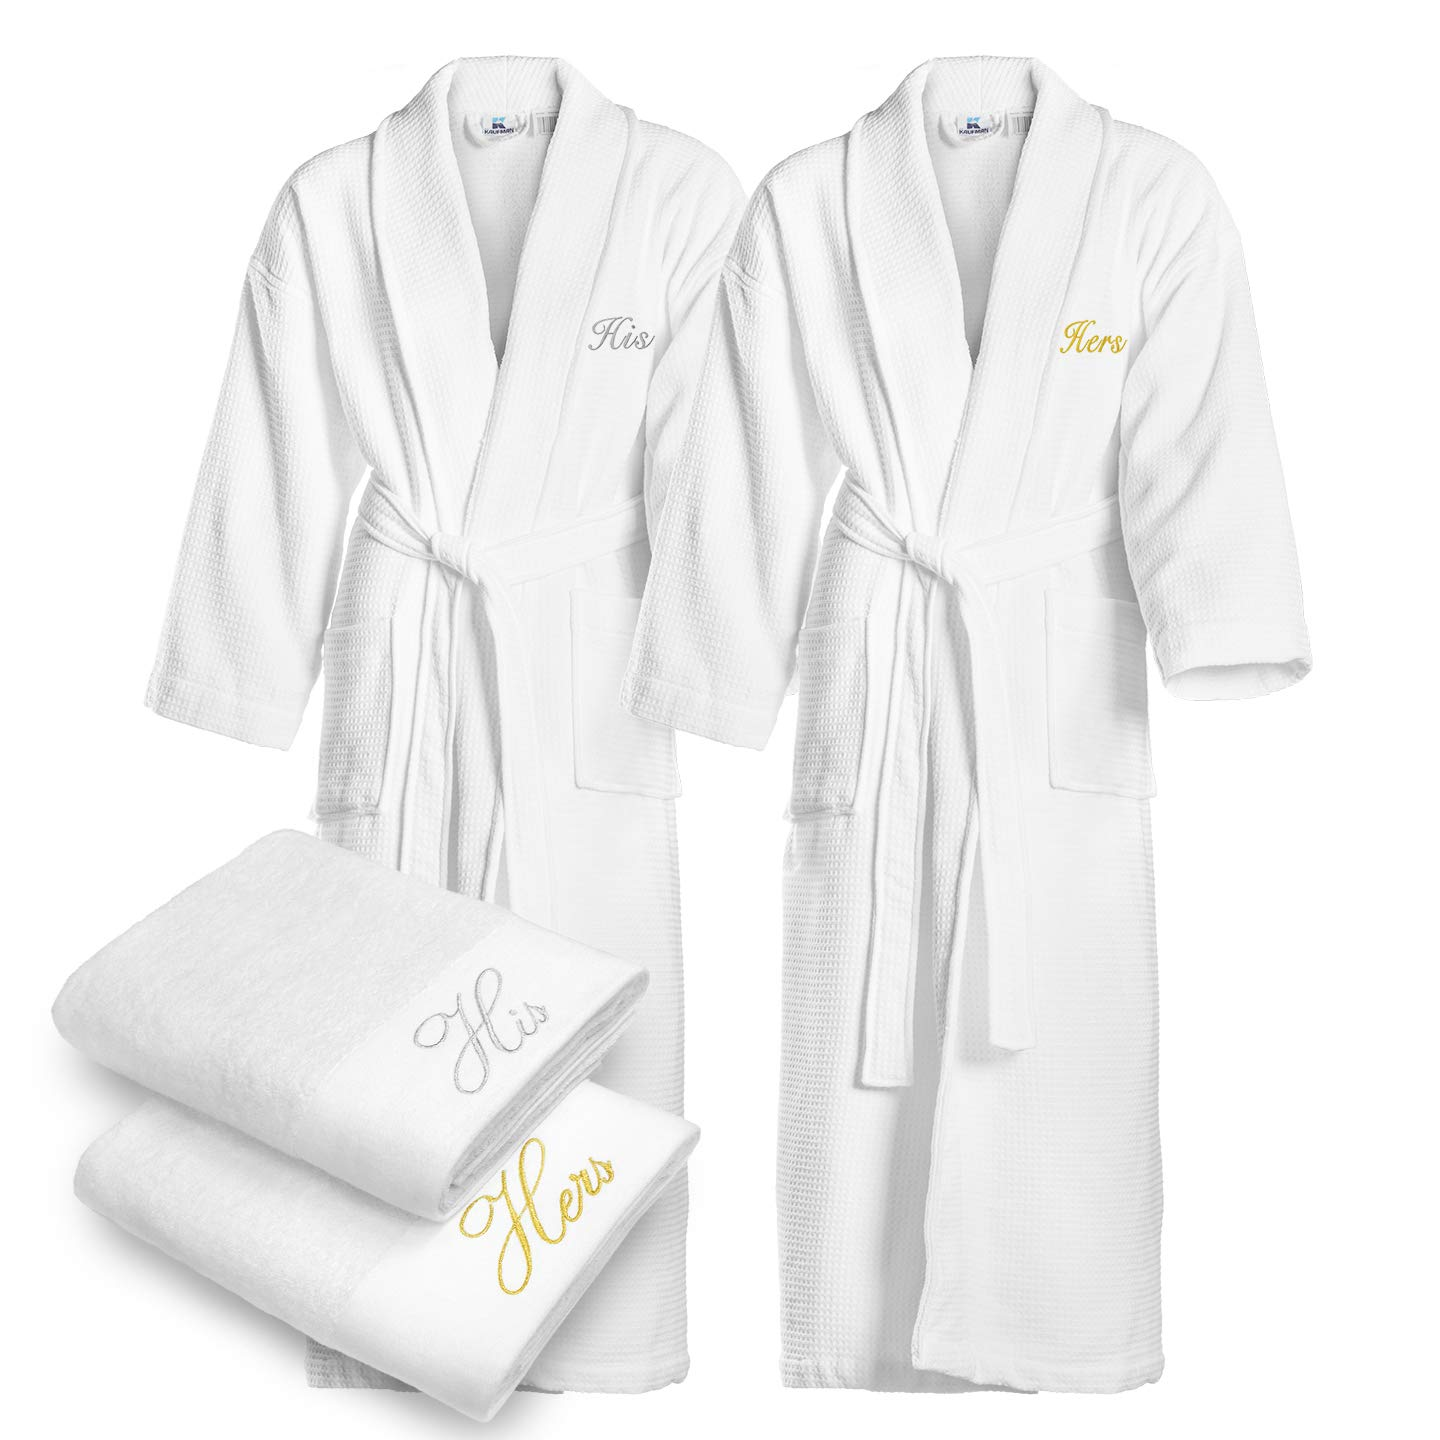 Amazon.com  Kaufman - Terry Cloth Bathrobes 100% Cotton - His and Hers  Embroidered Waffle Shawl Set of Robes with His and Hers White Towel Set  30  x58   ... 8bce9161c